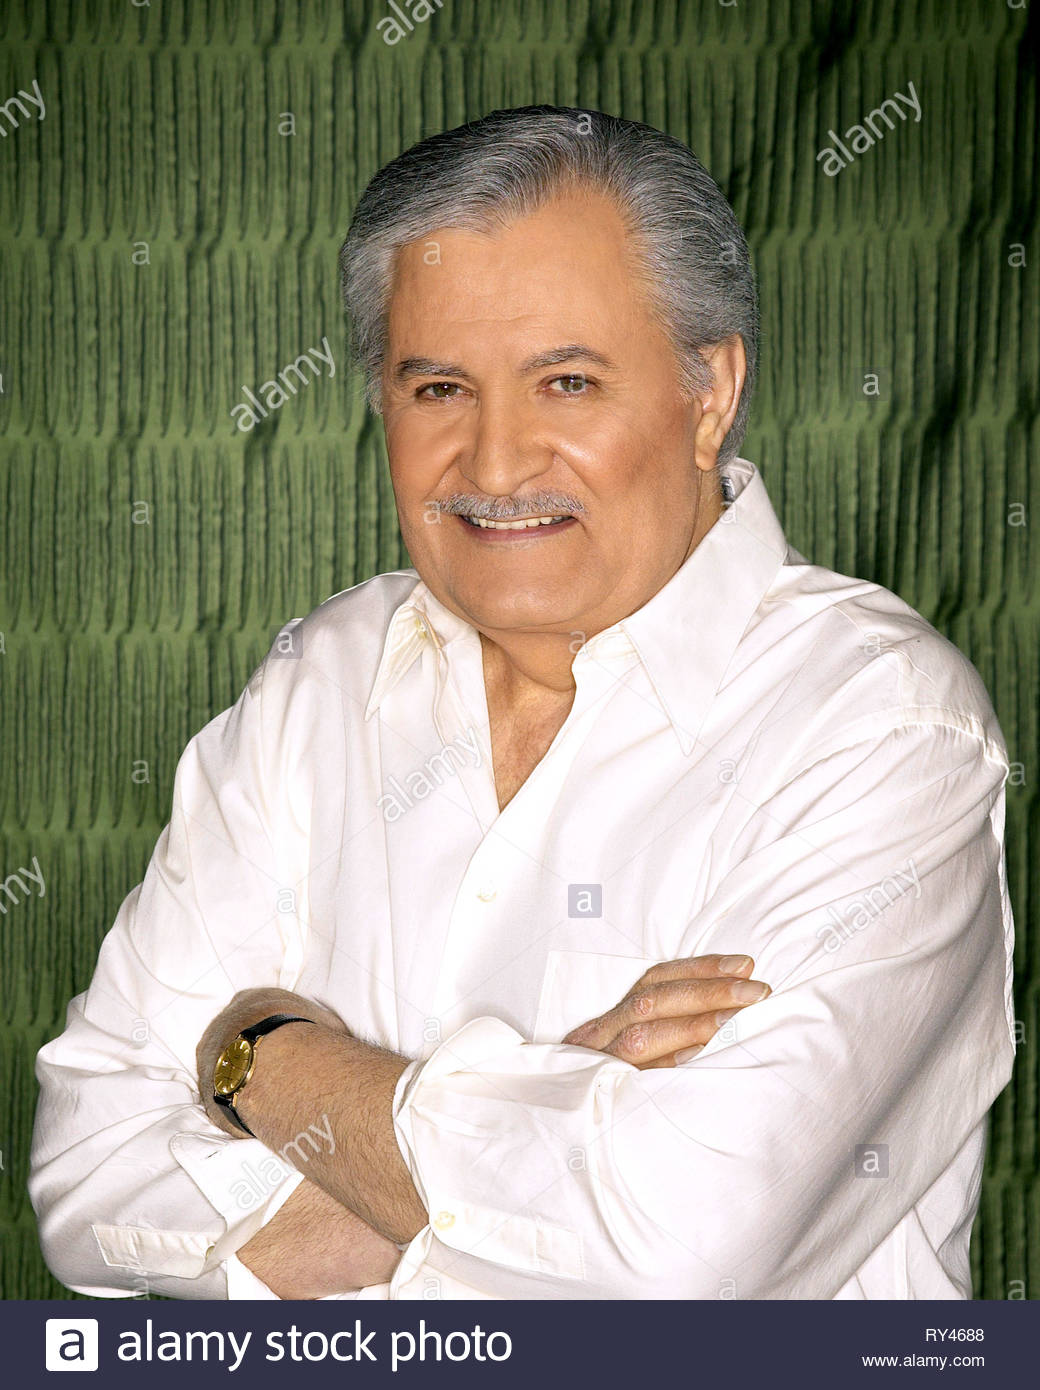 JOHN ANISTON, DAYS OF OUR LIVES, 2003 - Stock Image